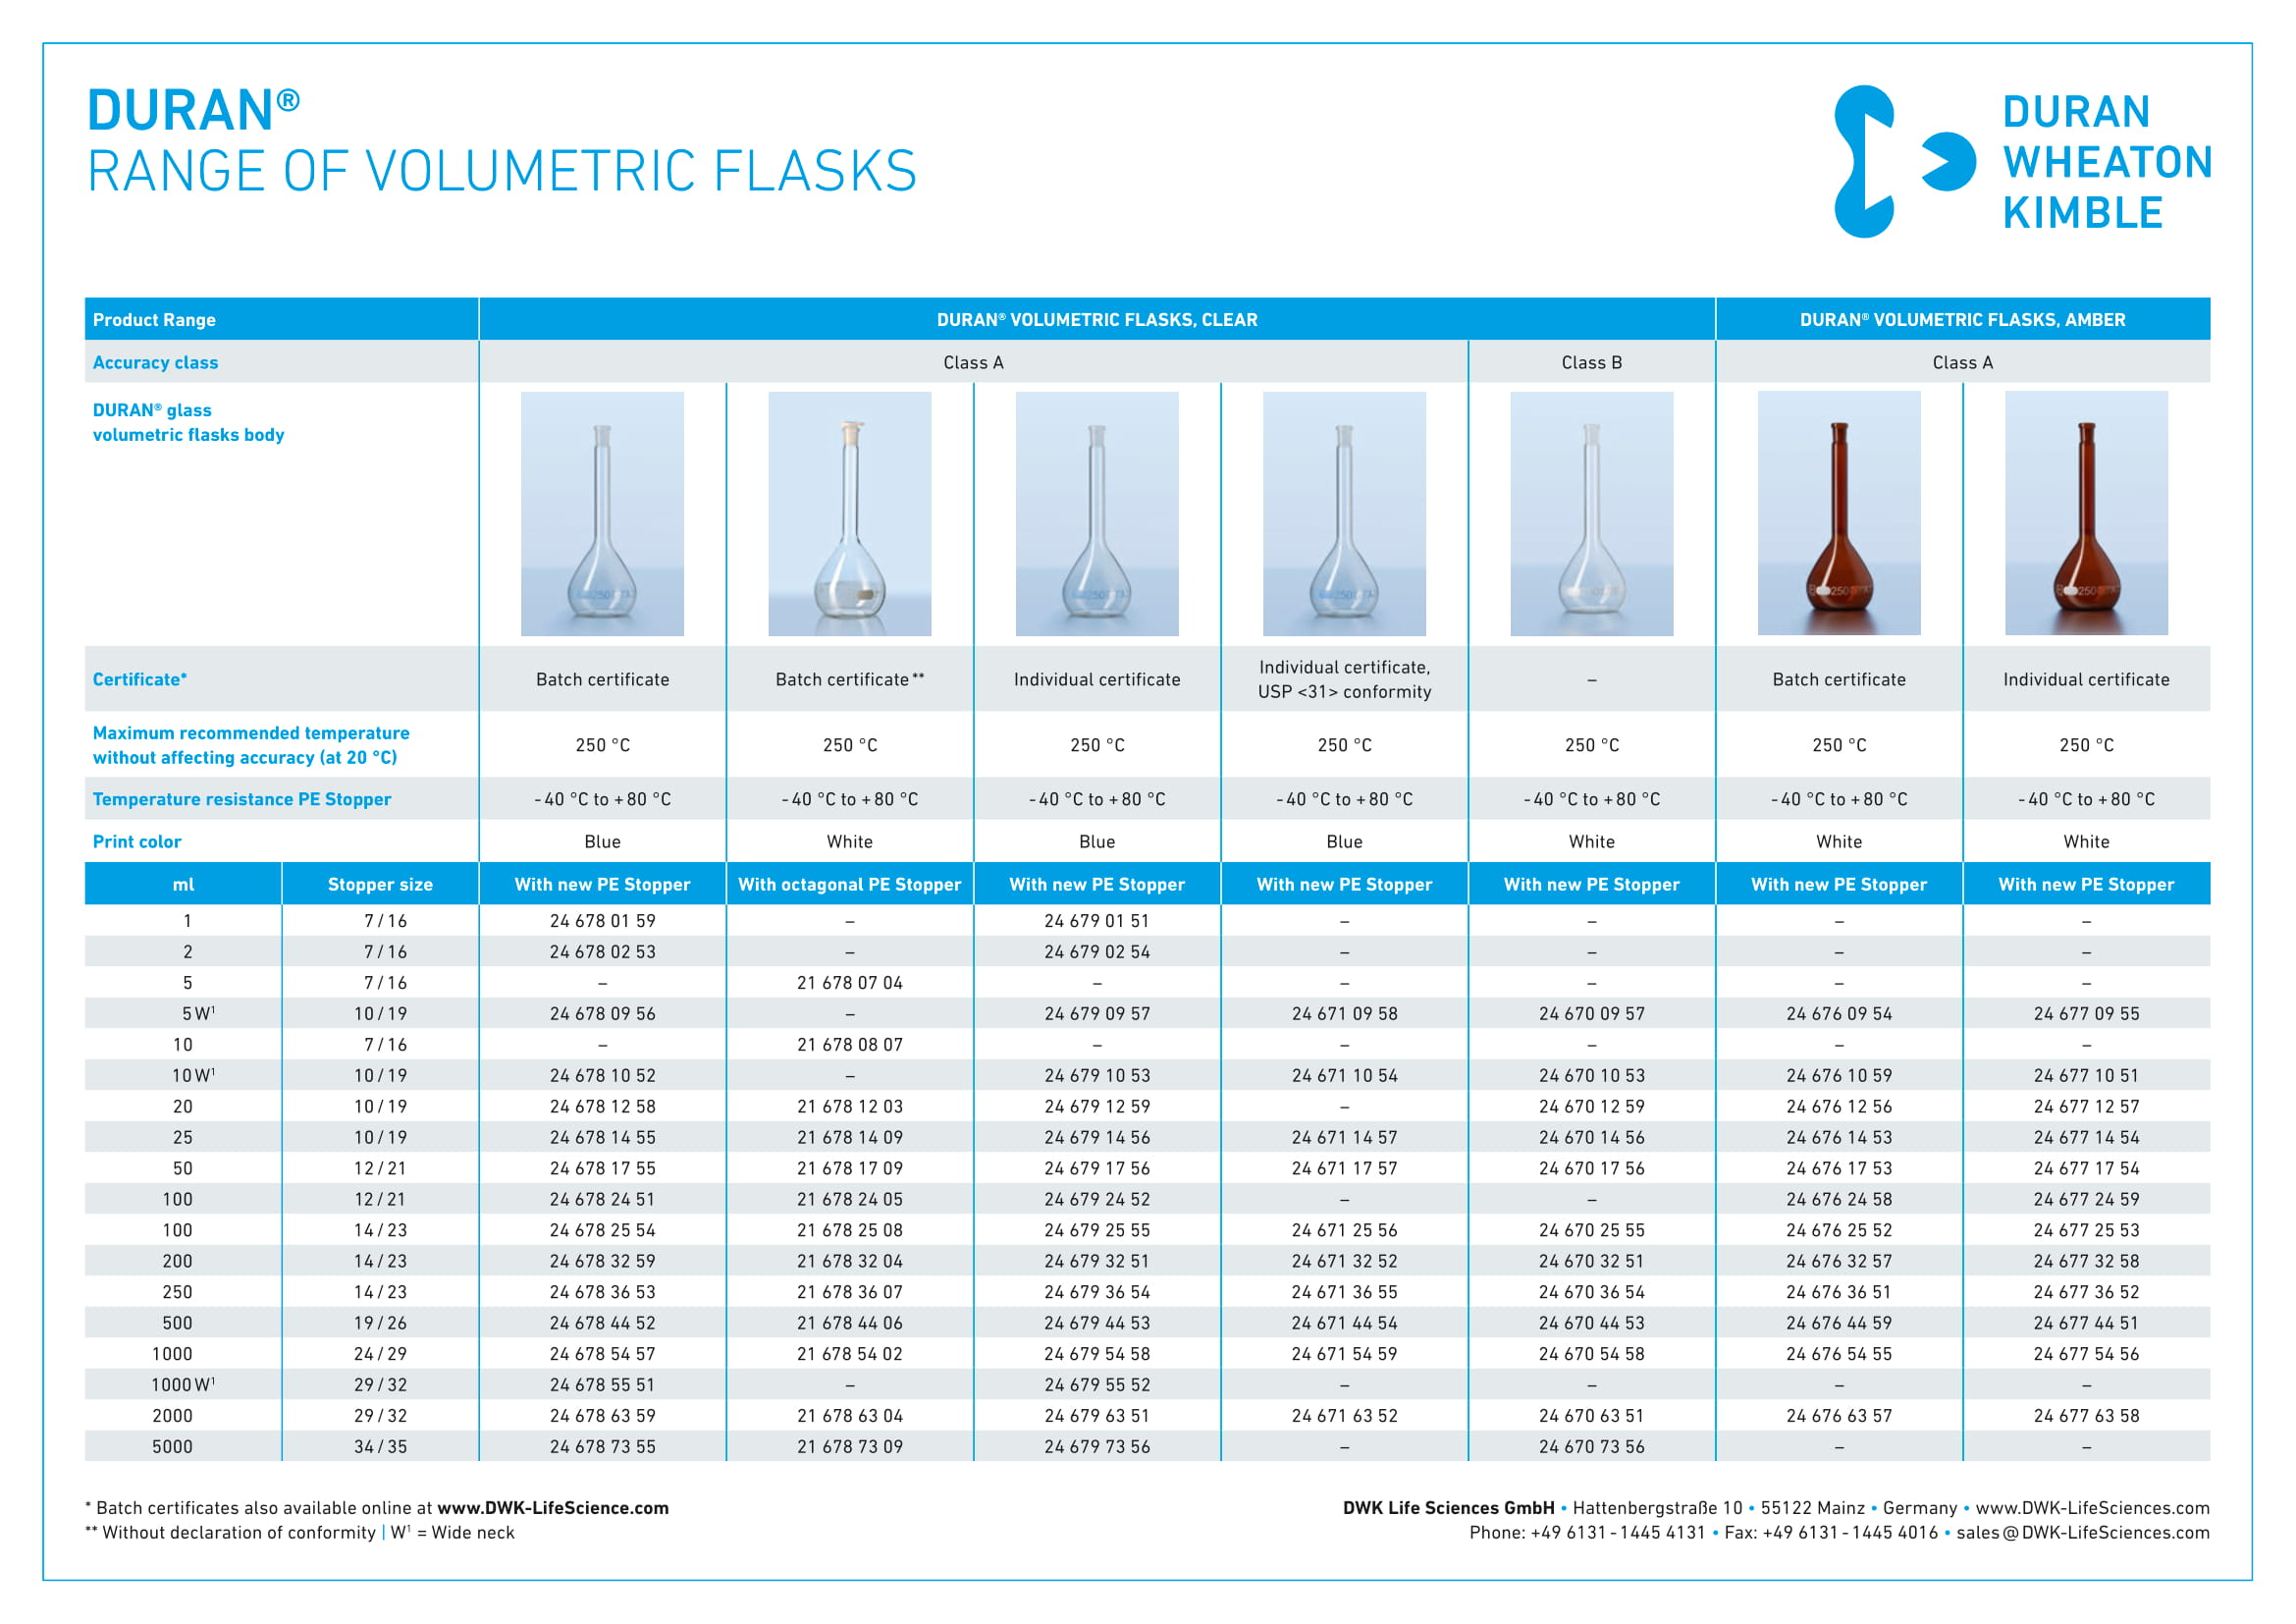 DURAN® Range of Volumetric Flasks